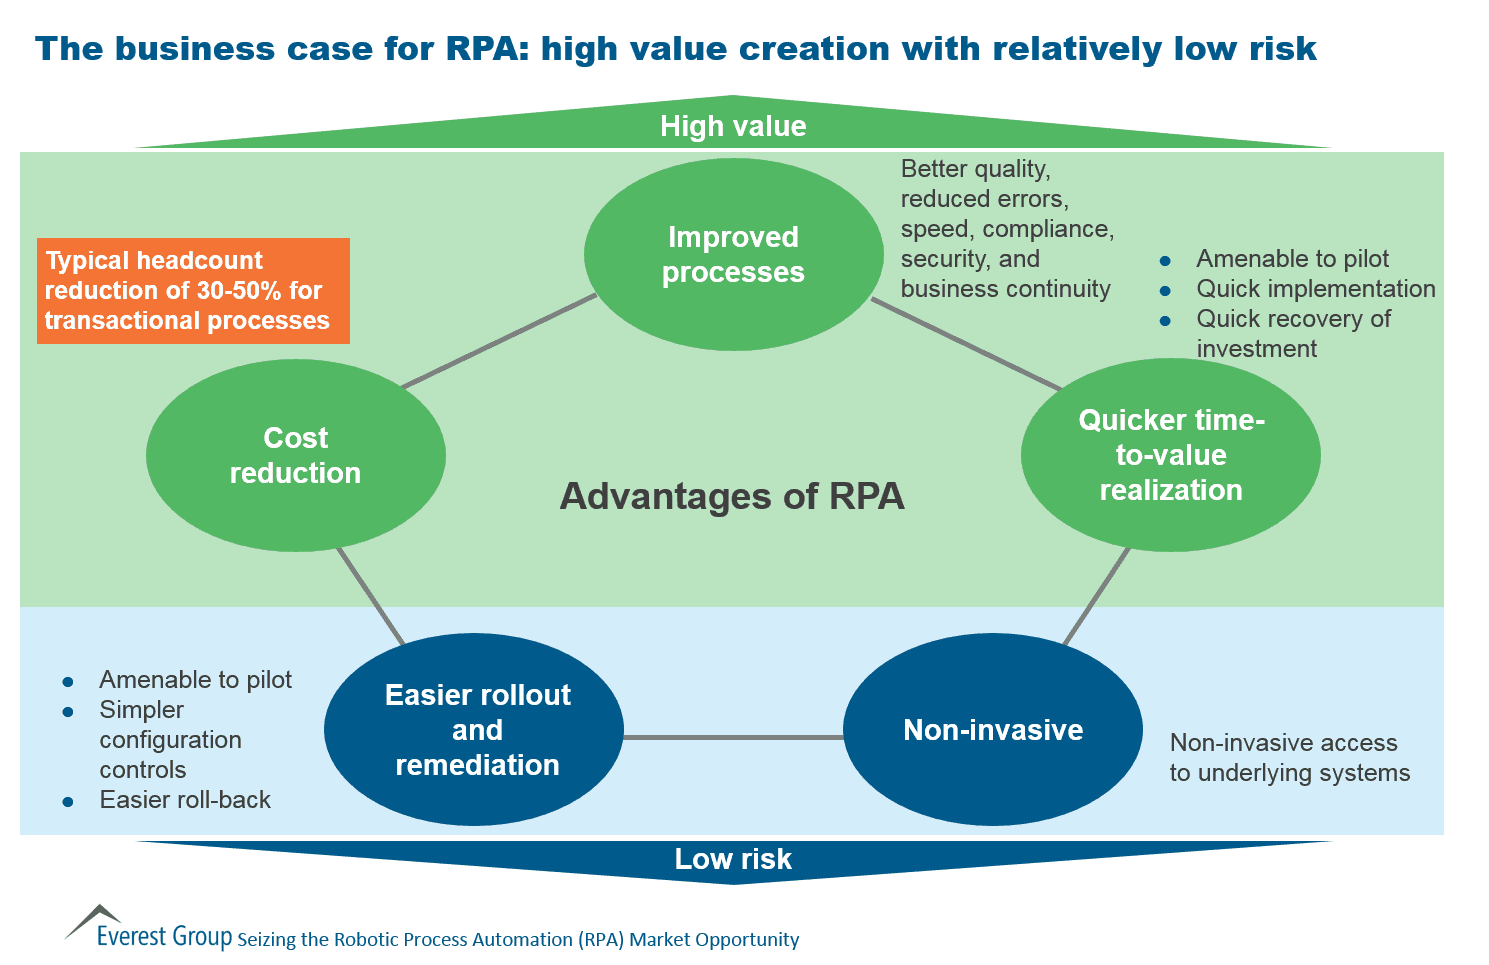 The Business Case for RPA: High Value Creation with